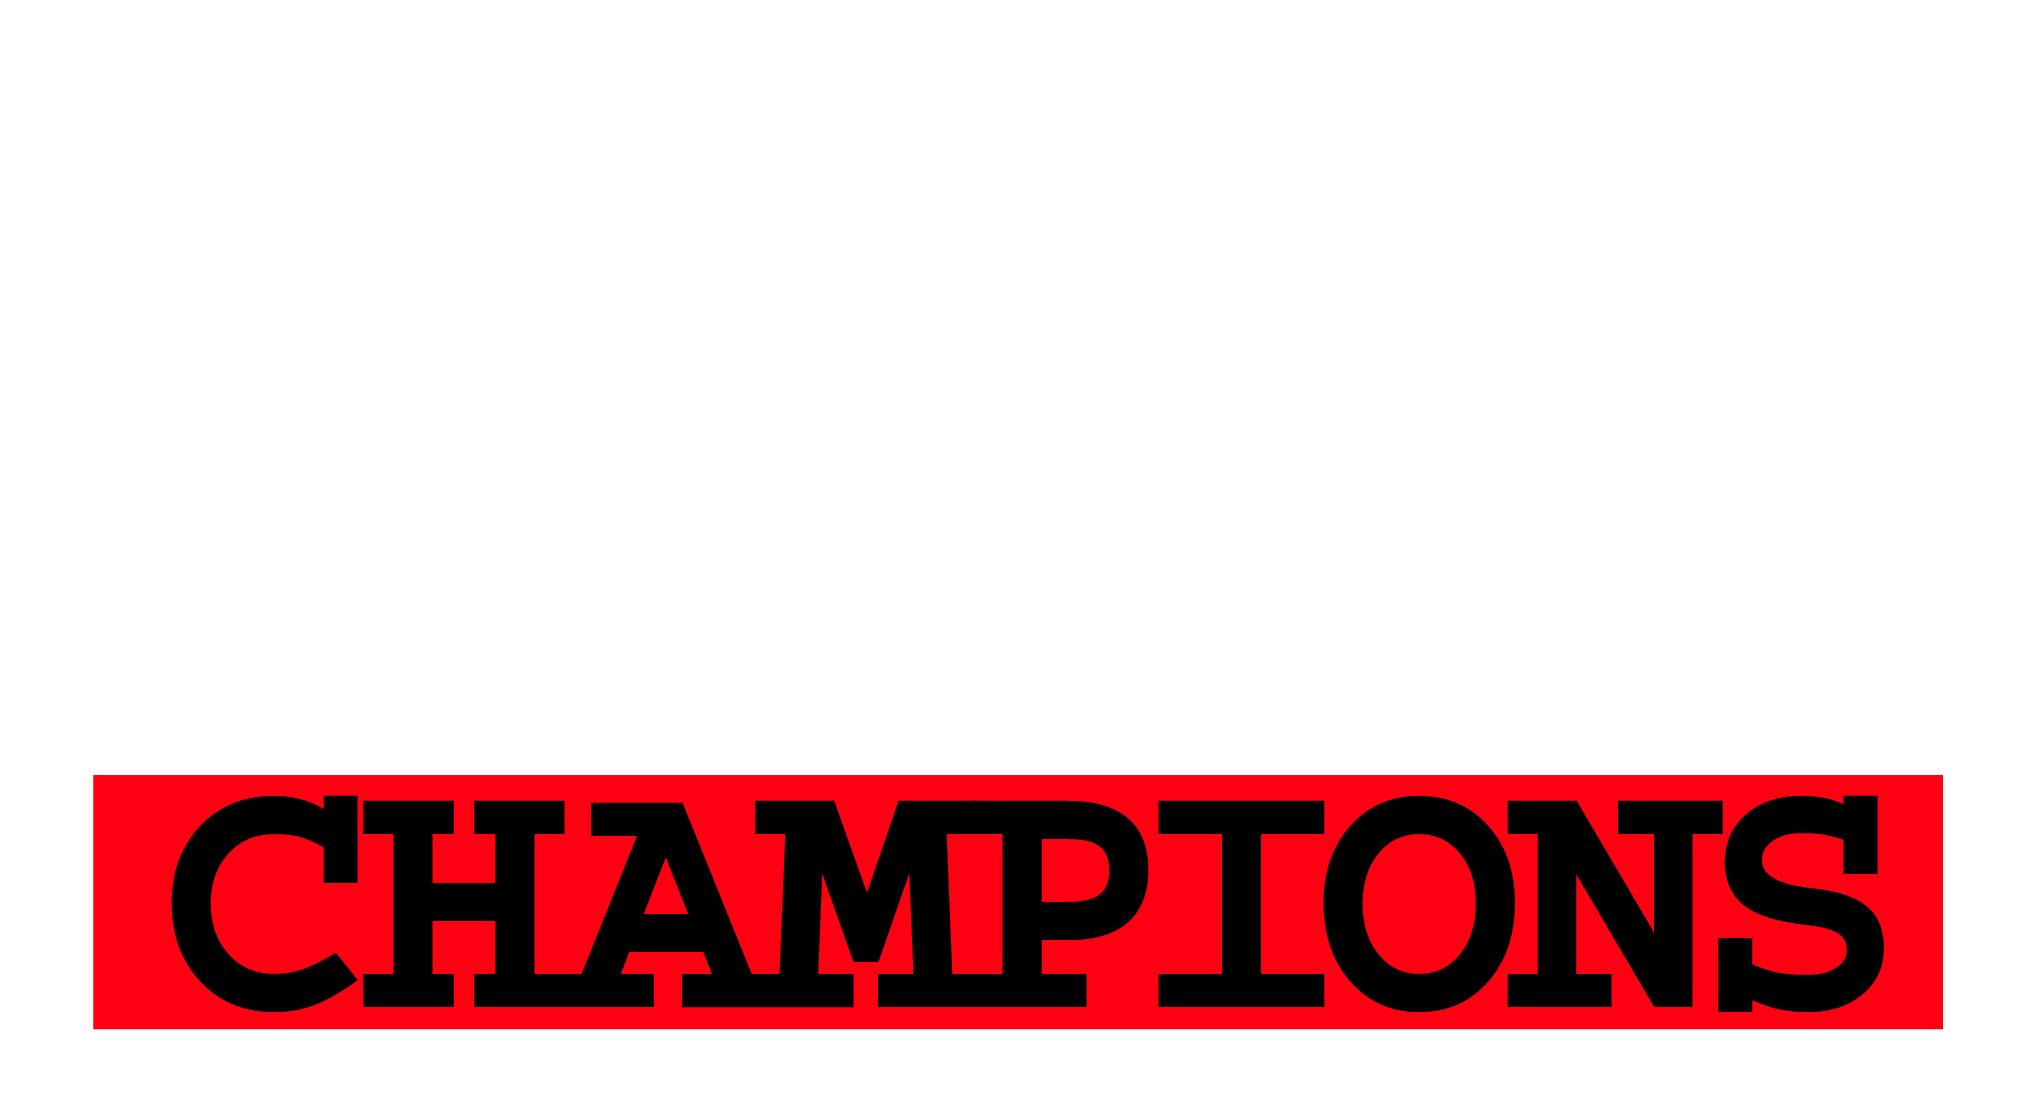 Wcw clash of the champions logo by b1uechr1s on deviantart wcw clash of the champions logo by b1uechr1s altavistaventures Image collections